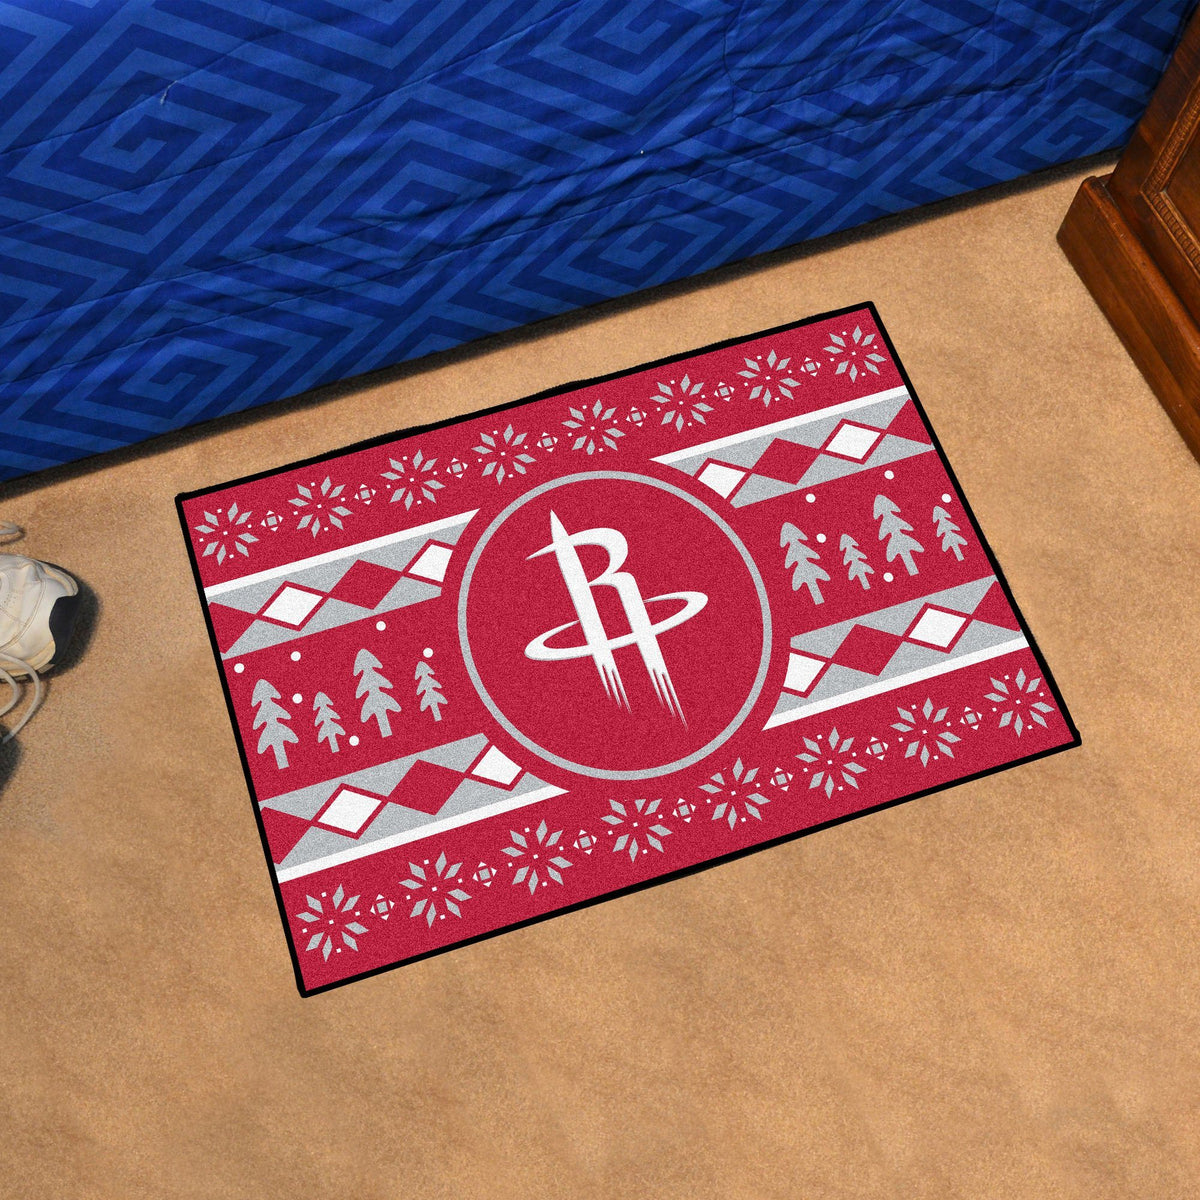 NBA - Holiday Sweater Starter Mat NBA Mats, Rectangular Mats, Holiday Sweater Starter Mat, NBA, Home Fan Mats Houston Rockets